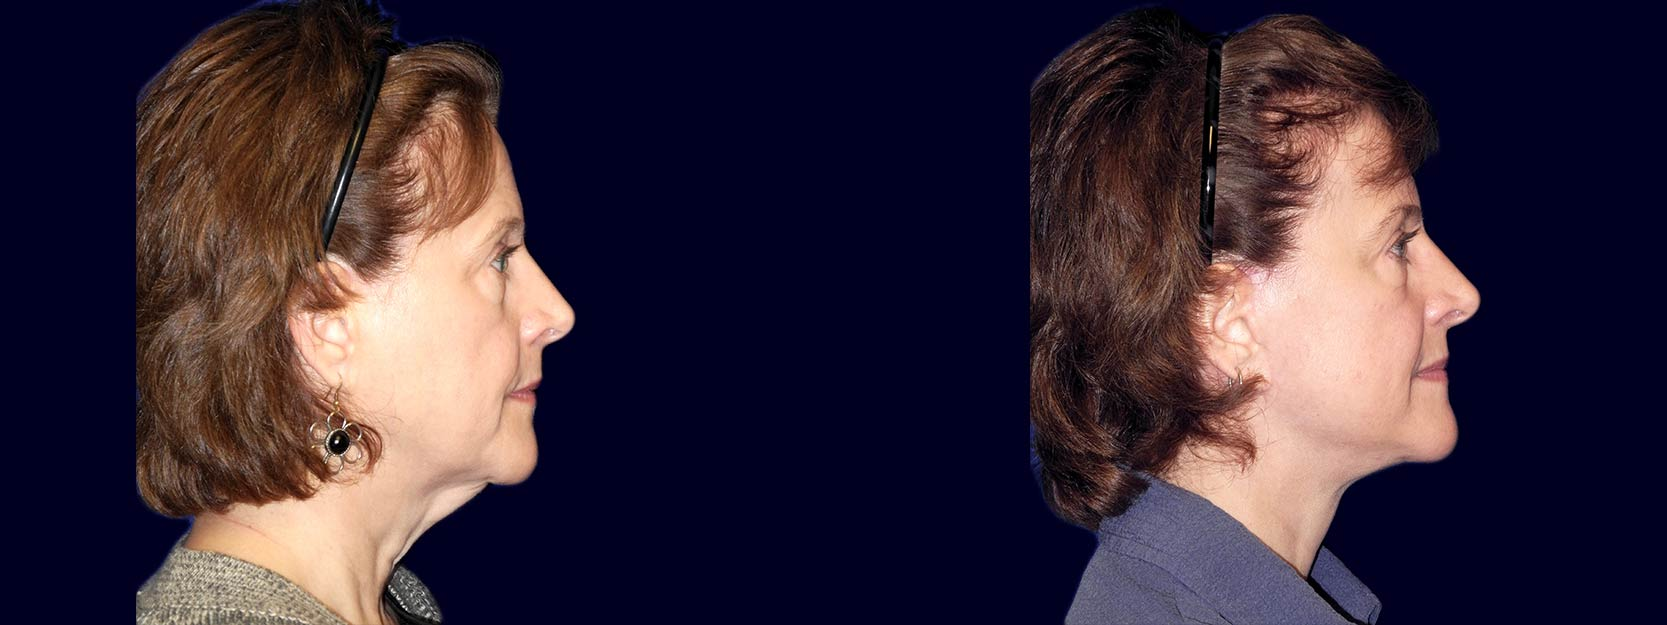 Right Profile View - Lower Facelift